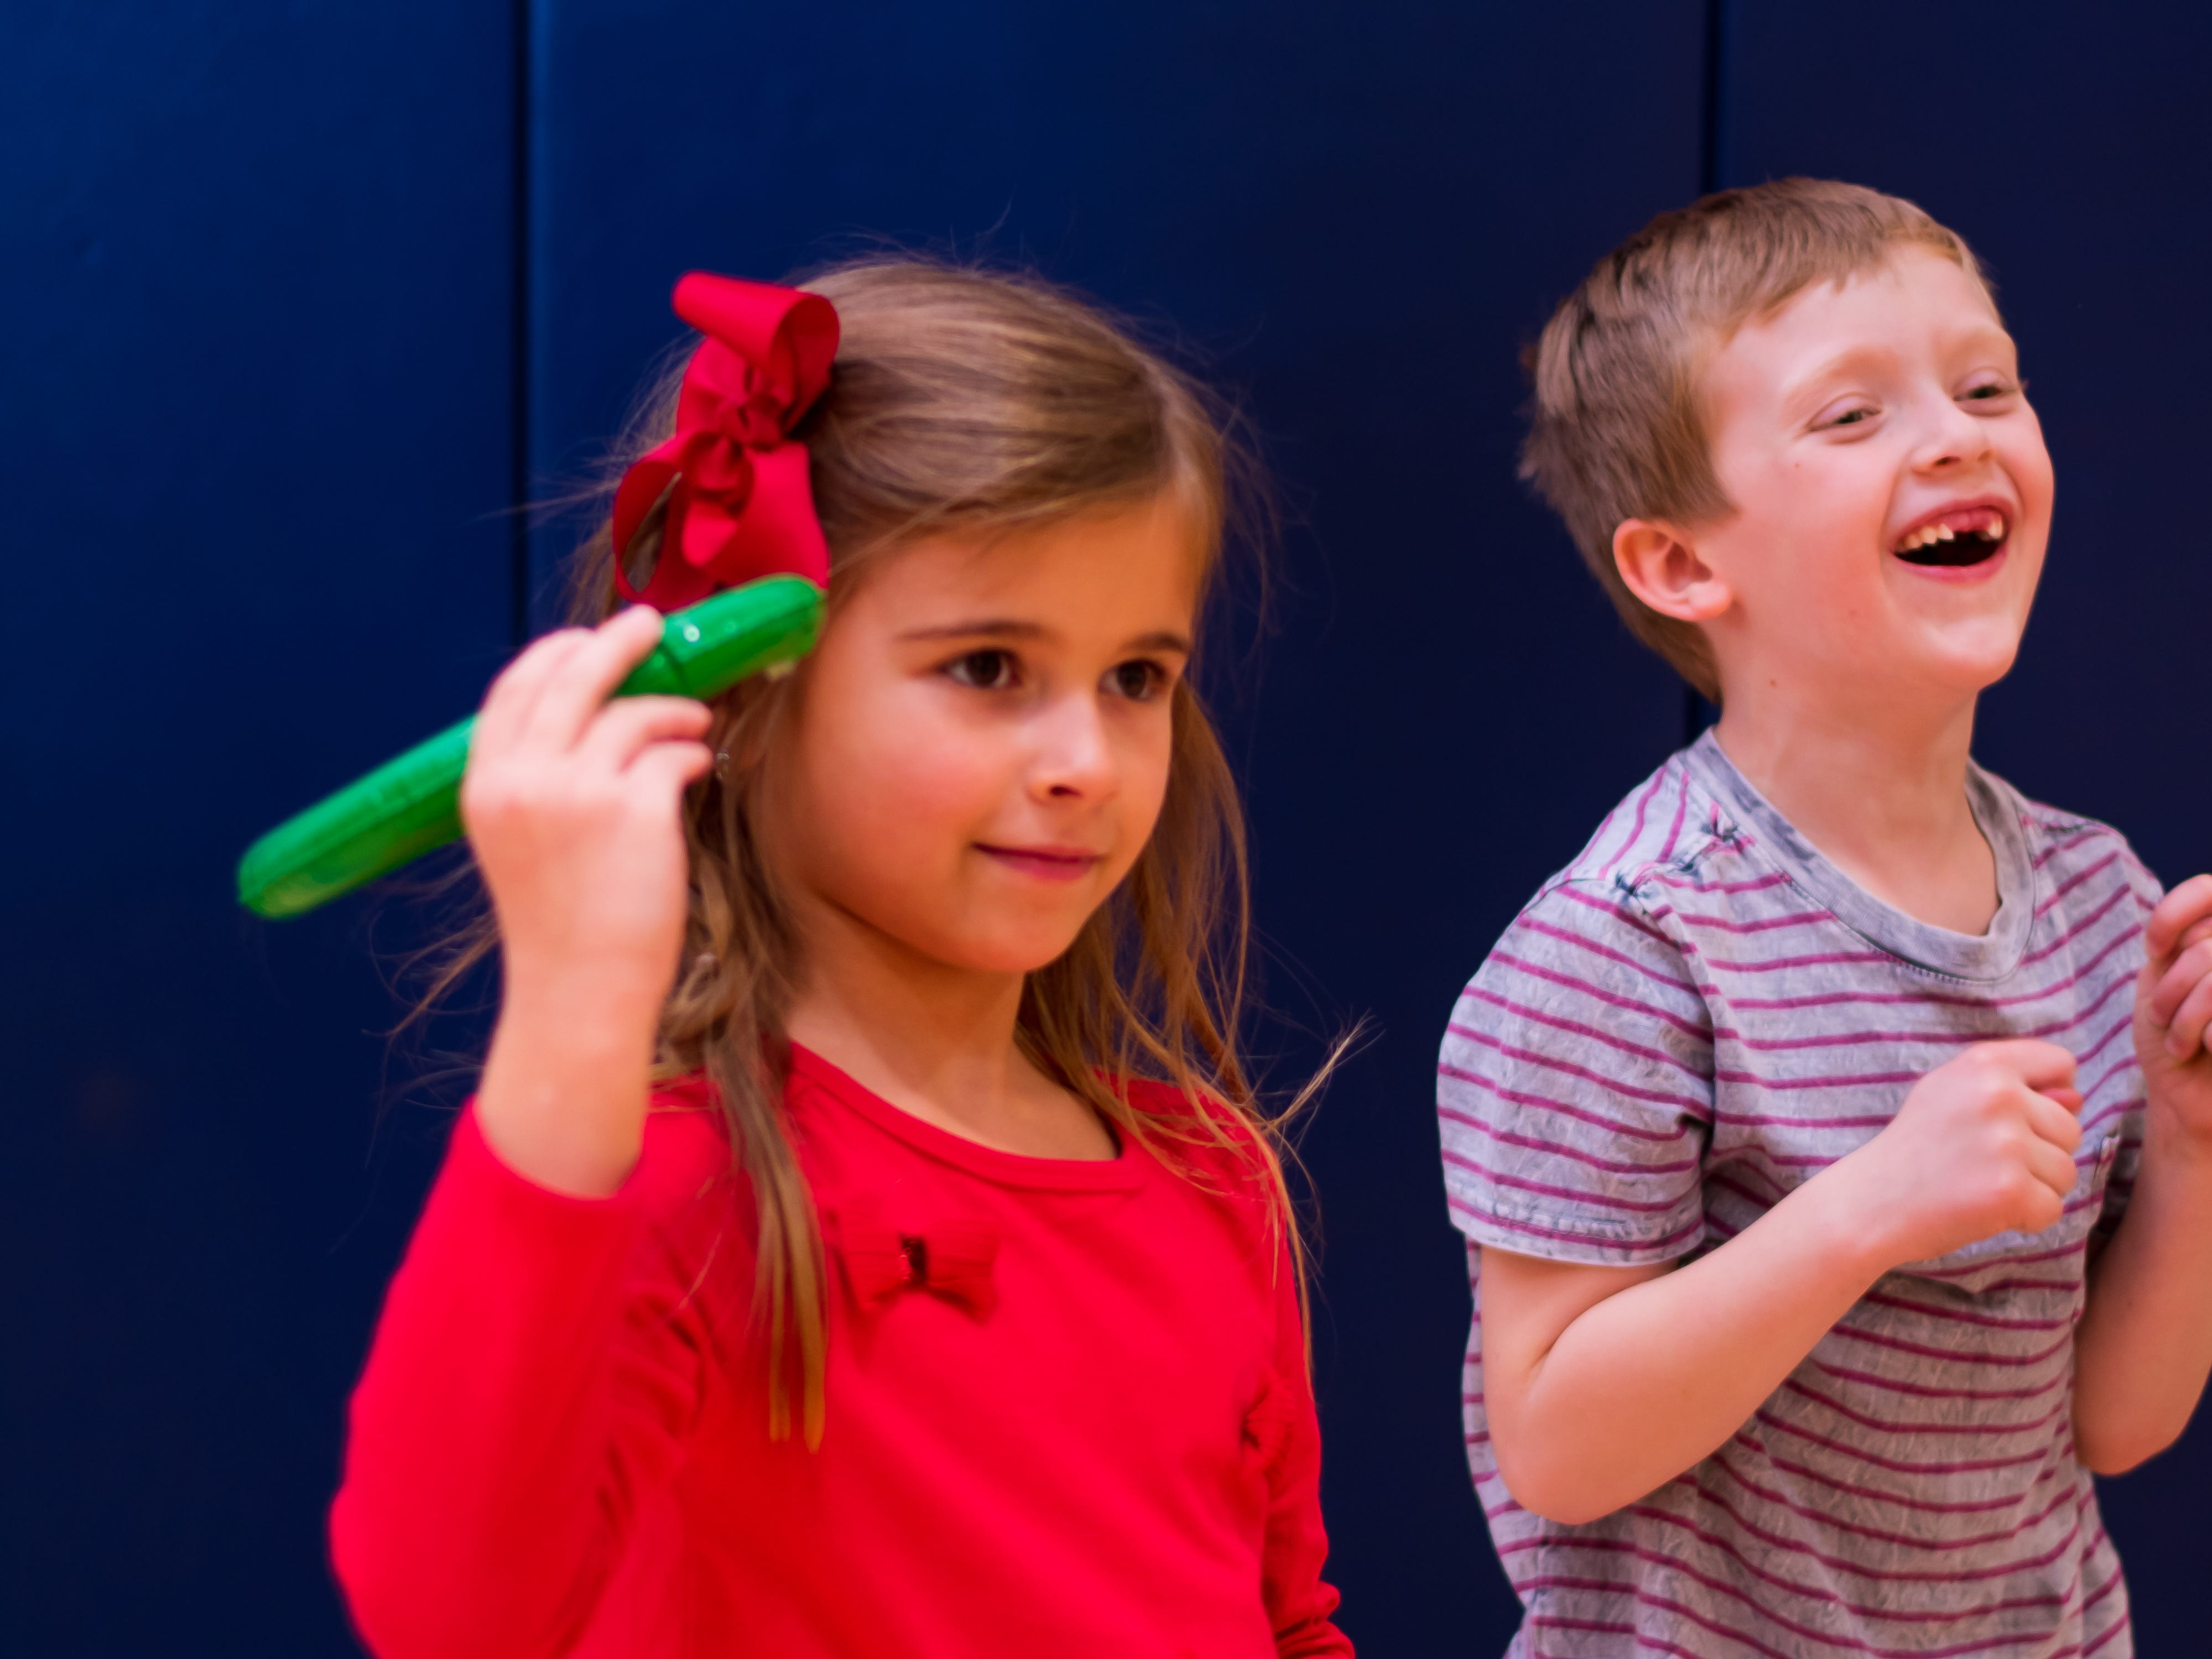 Melina Beslagic, 6, and Aiden Torpy, 6, both of Urbandale play a game on Friday, Dec. 21, 2018 at Karen Acres Elementary School in Urbandale for their winter party.